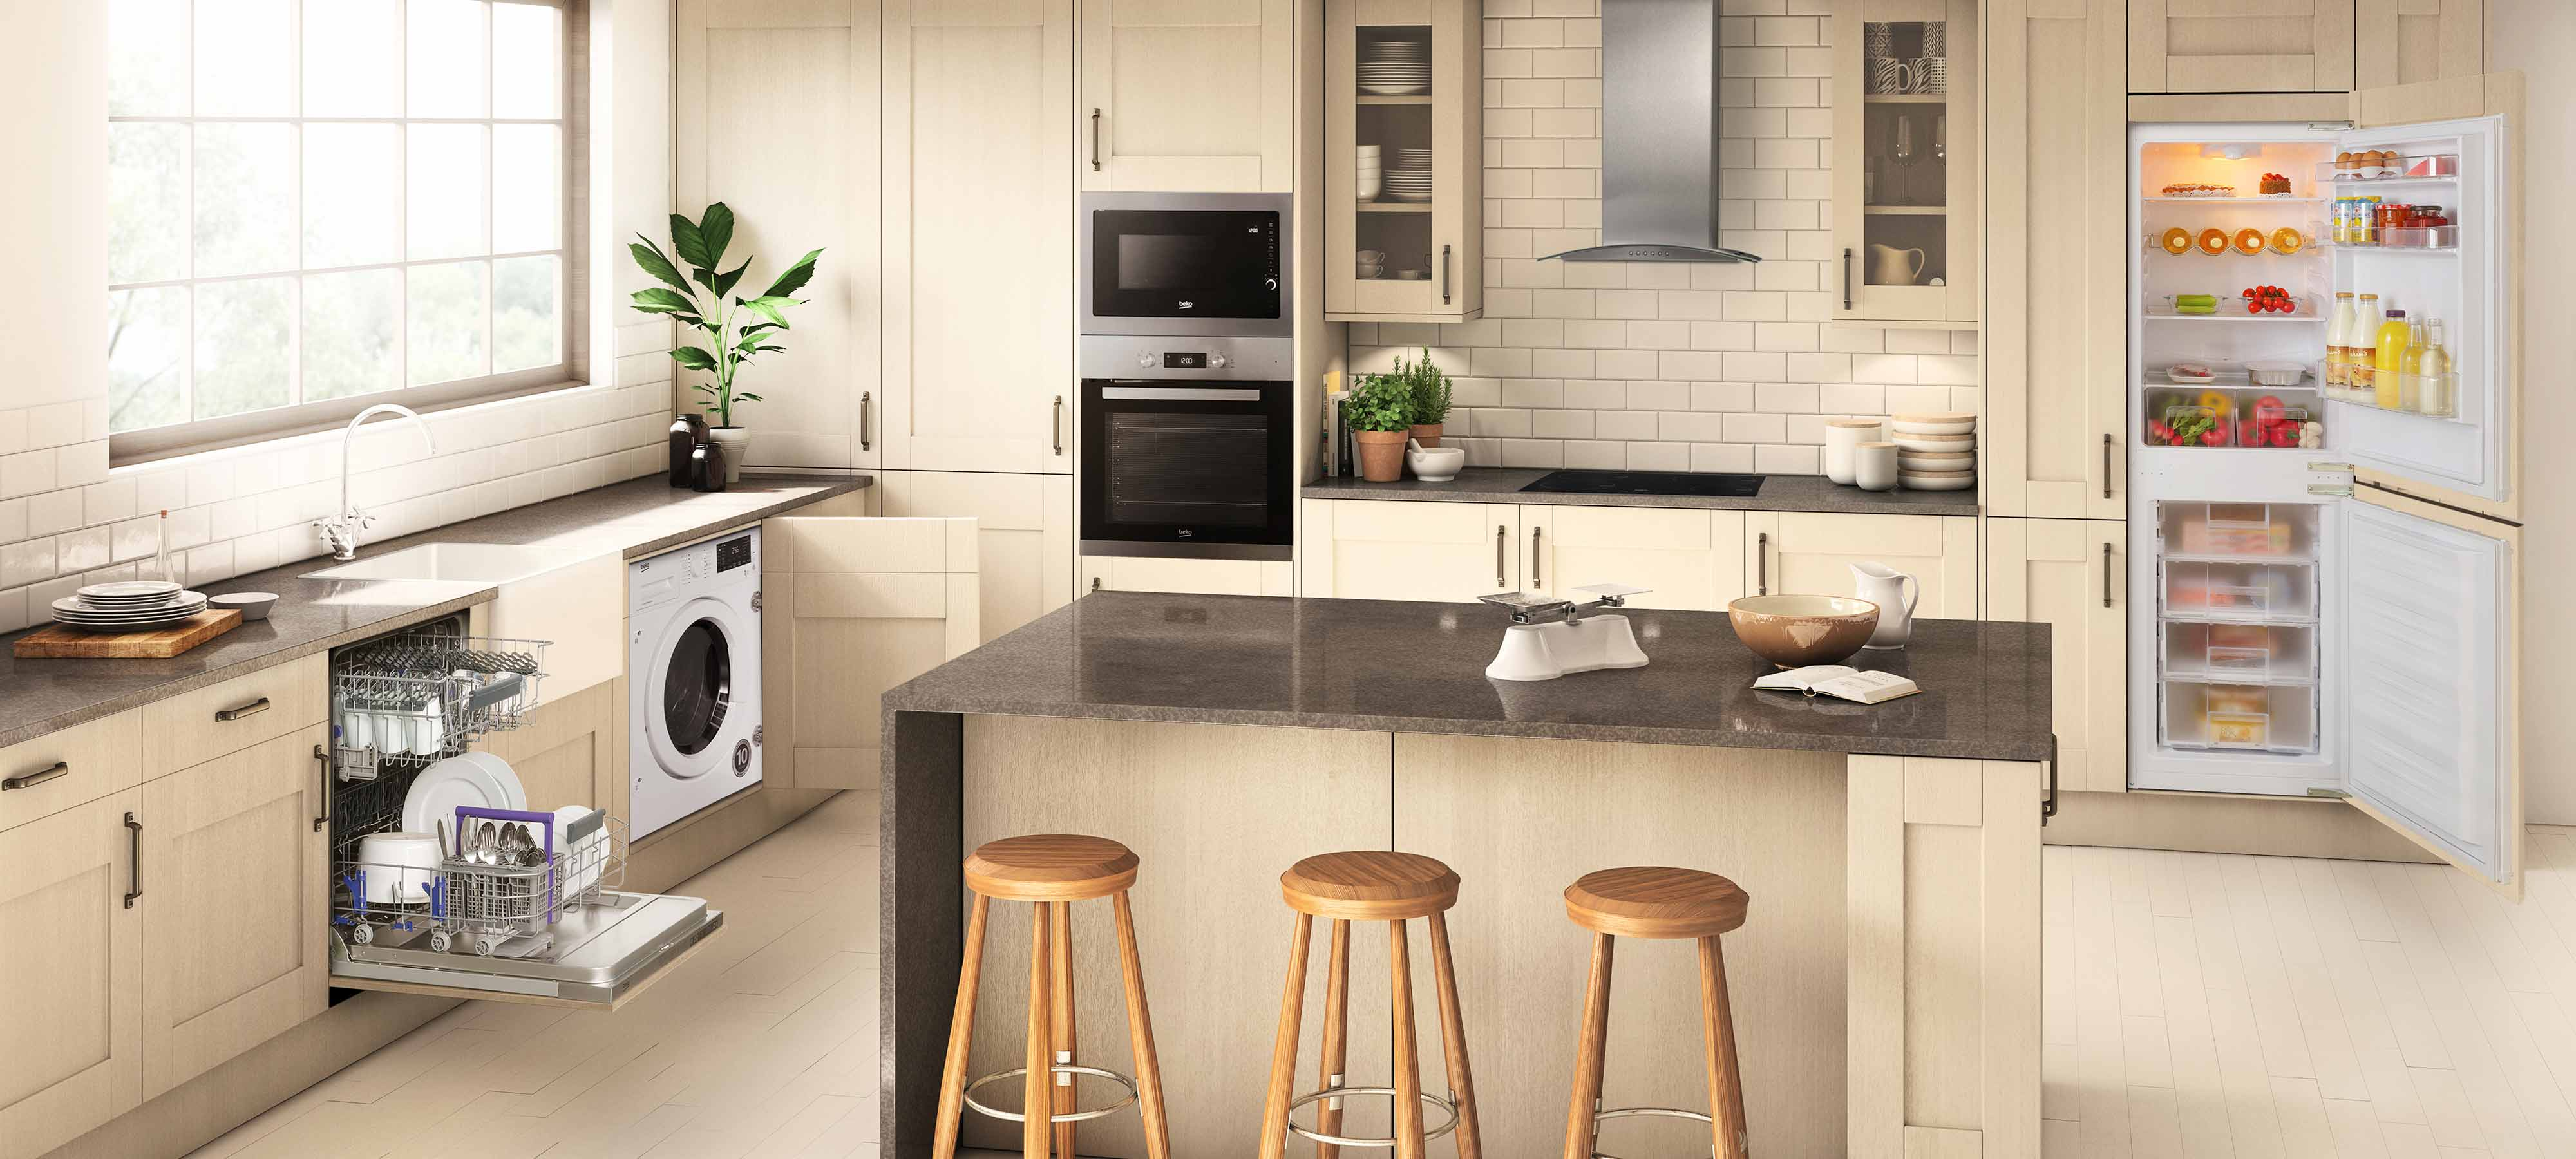 Uncategorized Beko Kitchen Appliances beko appliances from ao com built in family kitchens available at com